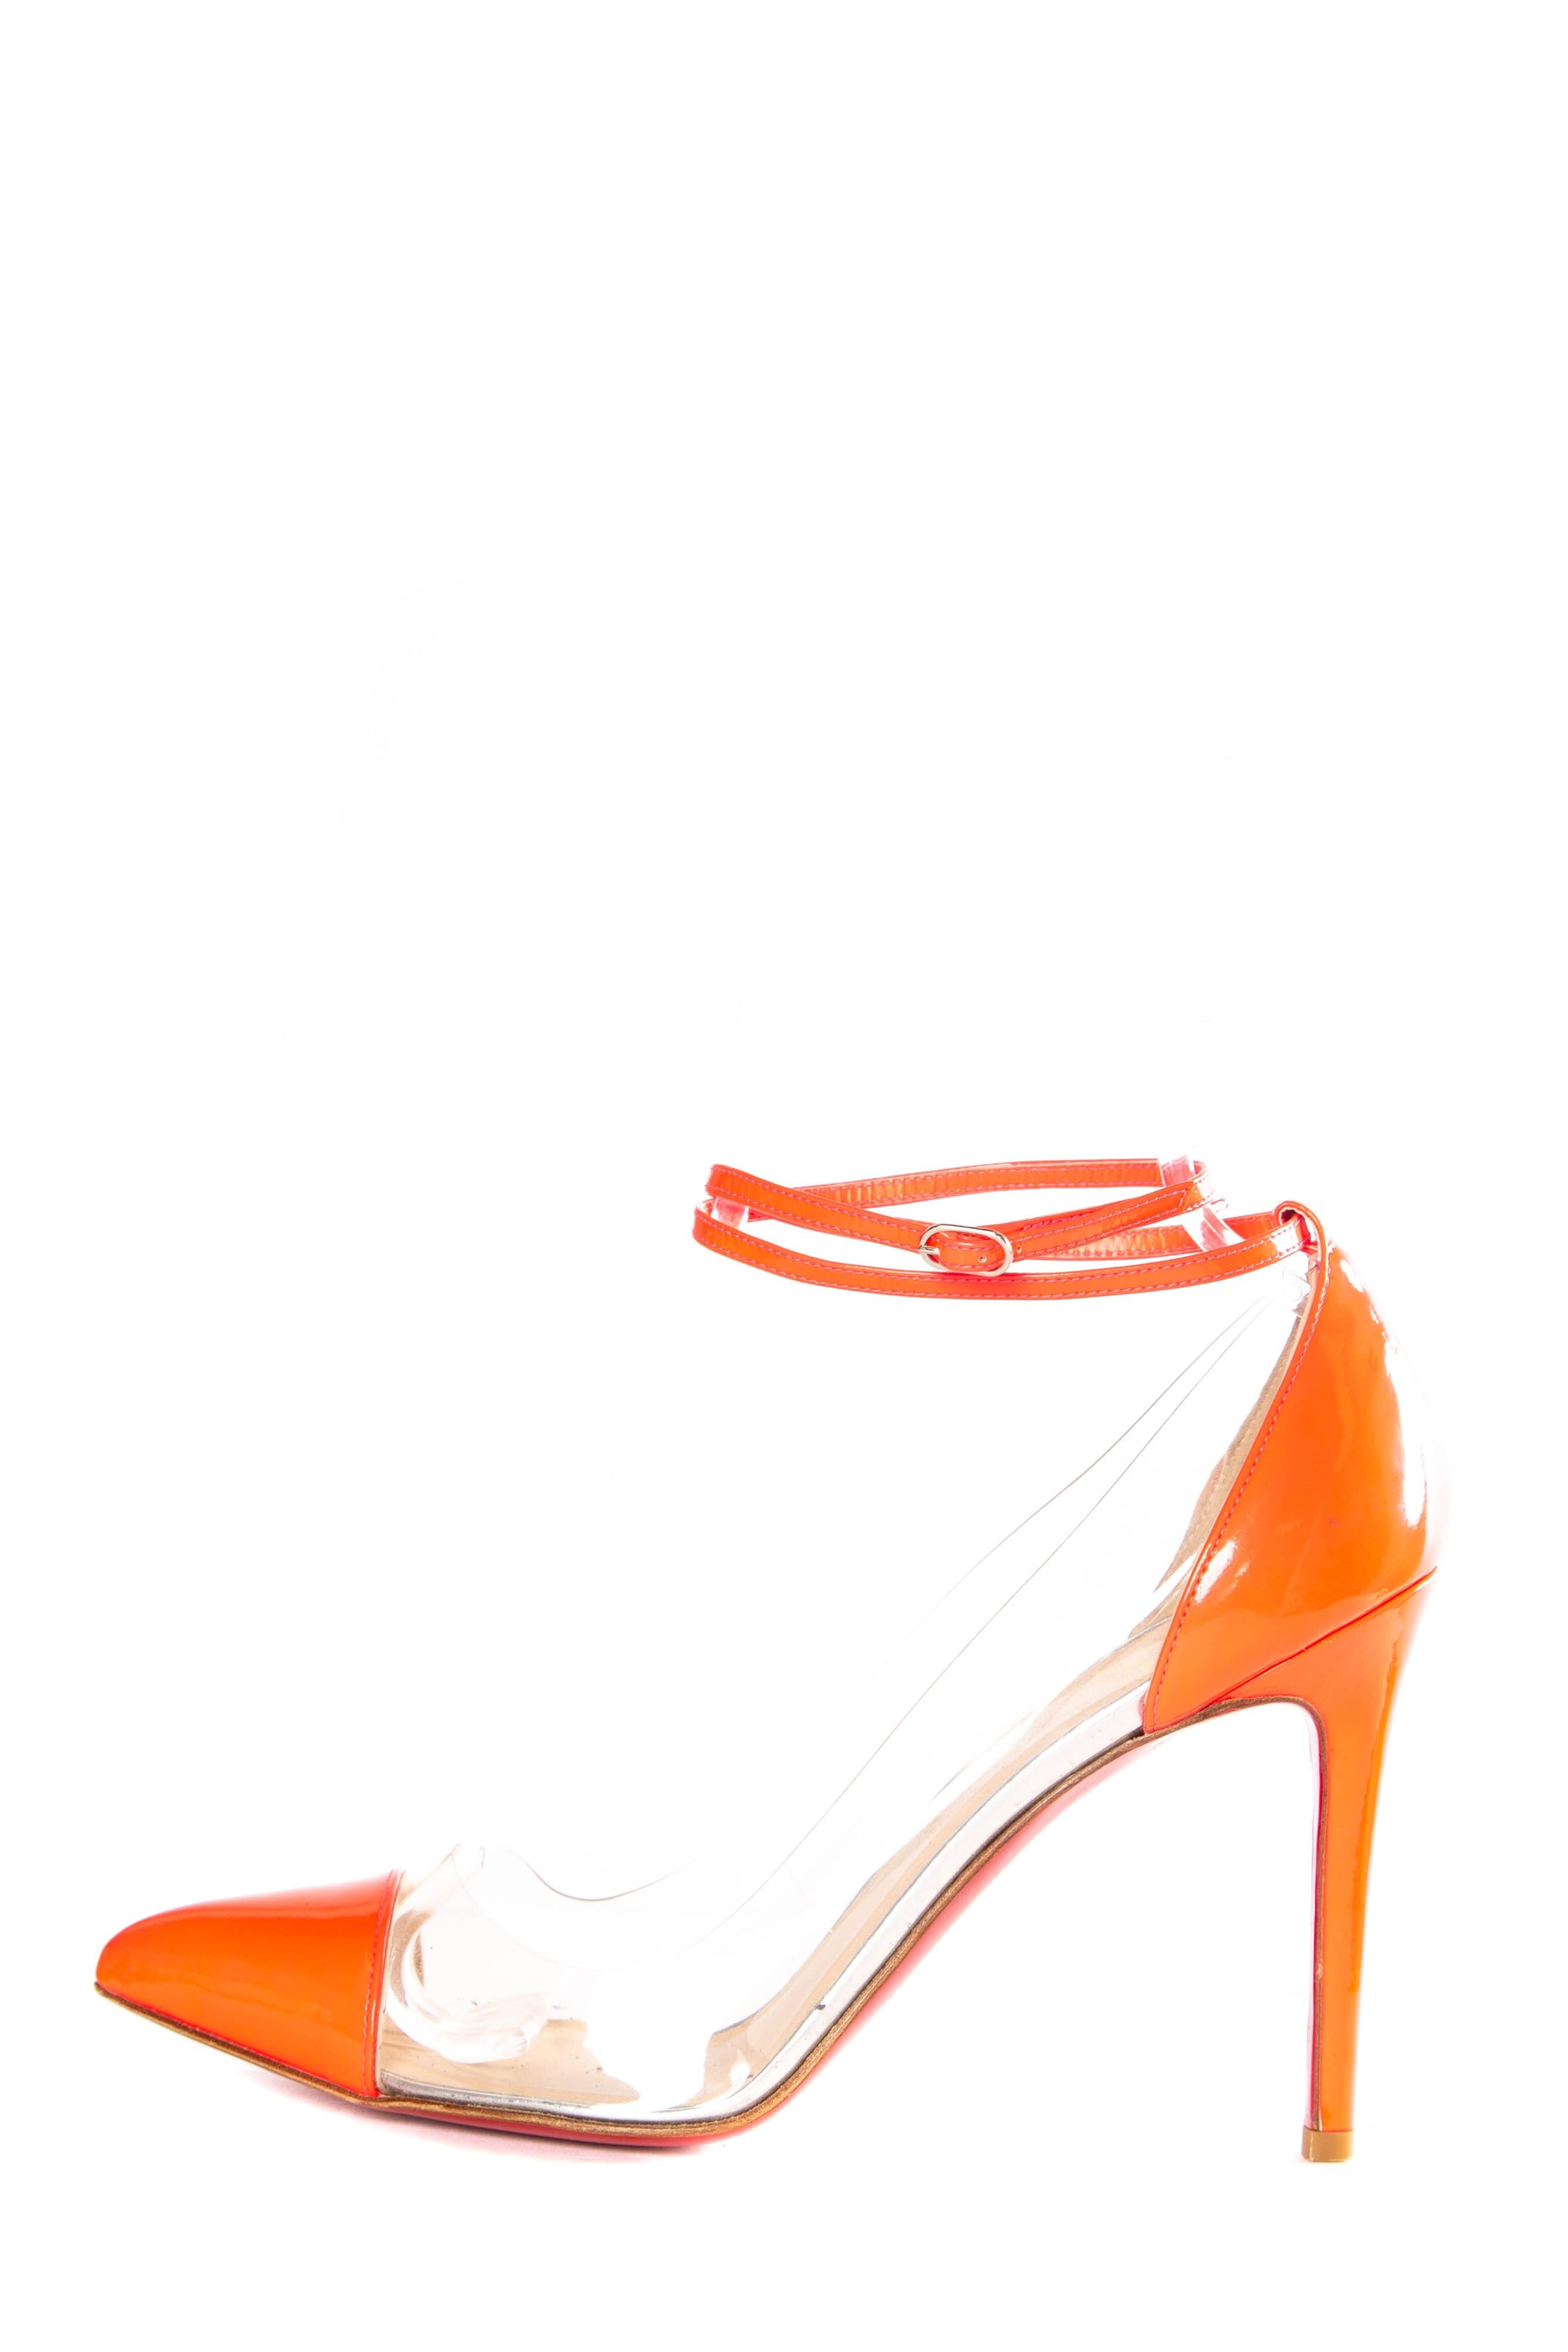 7a9e74d61df ... best christian louboutin neon pink orange sandals f79f8 45a45